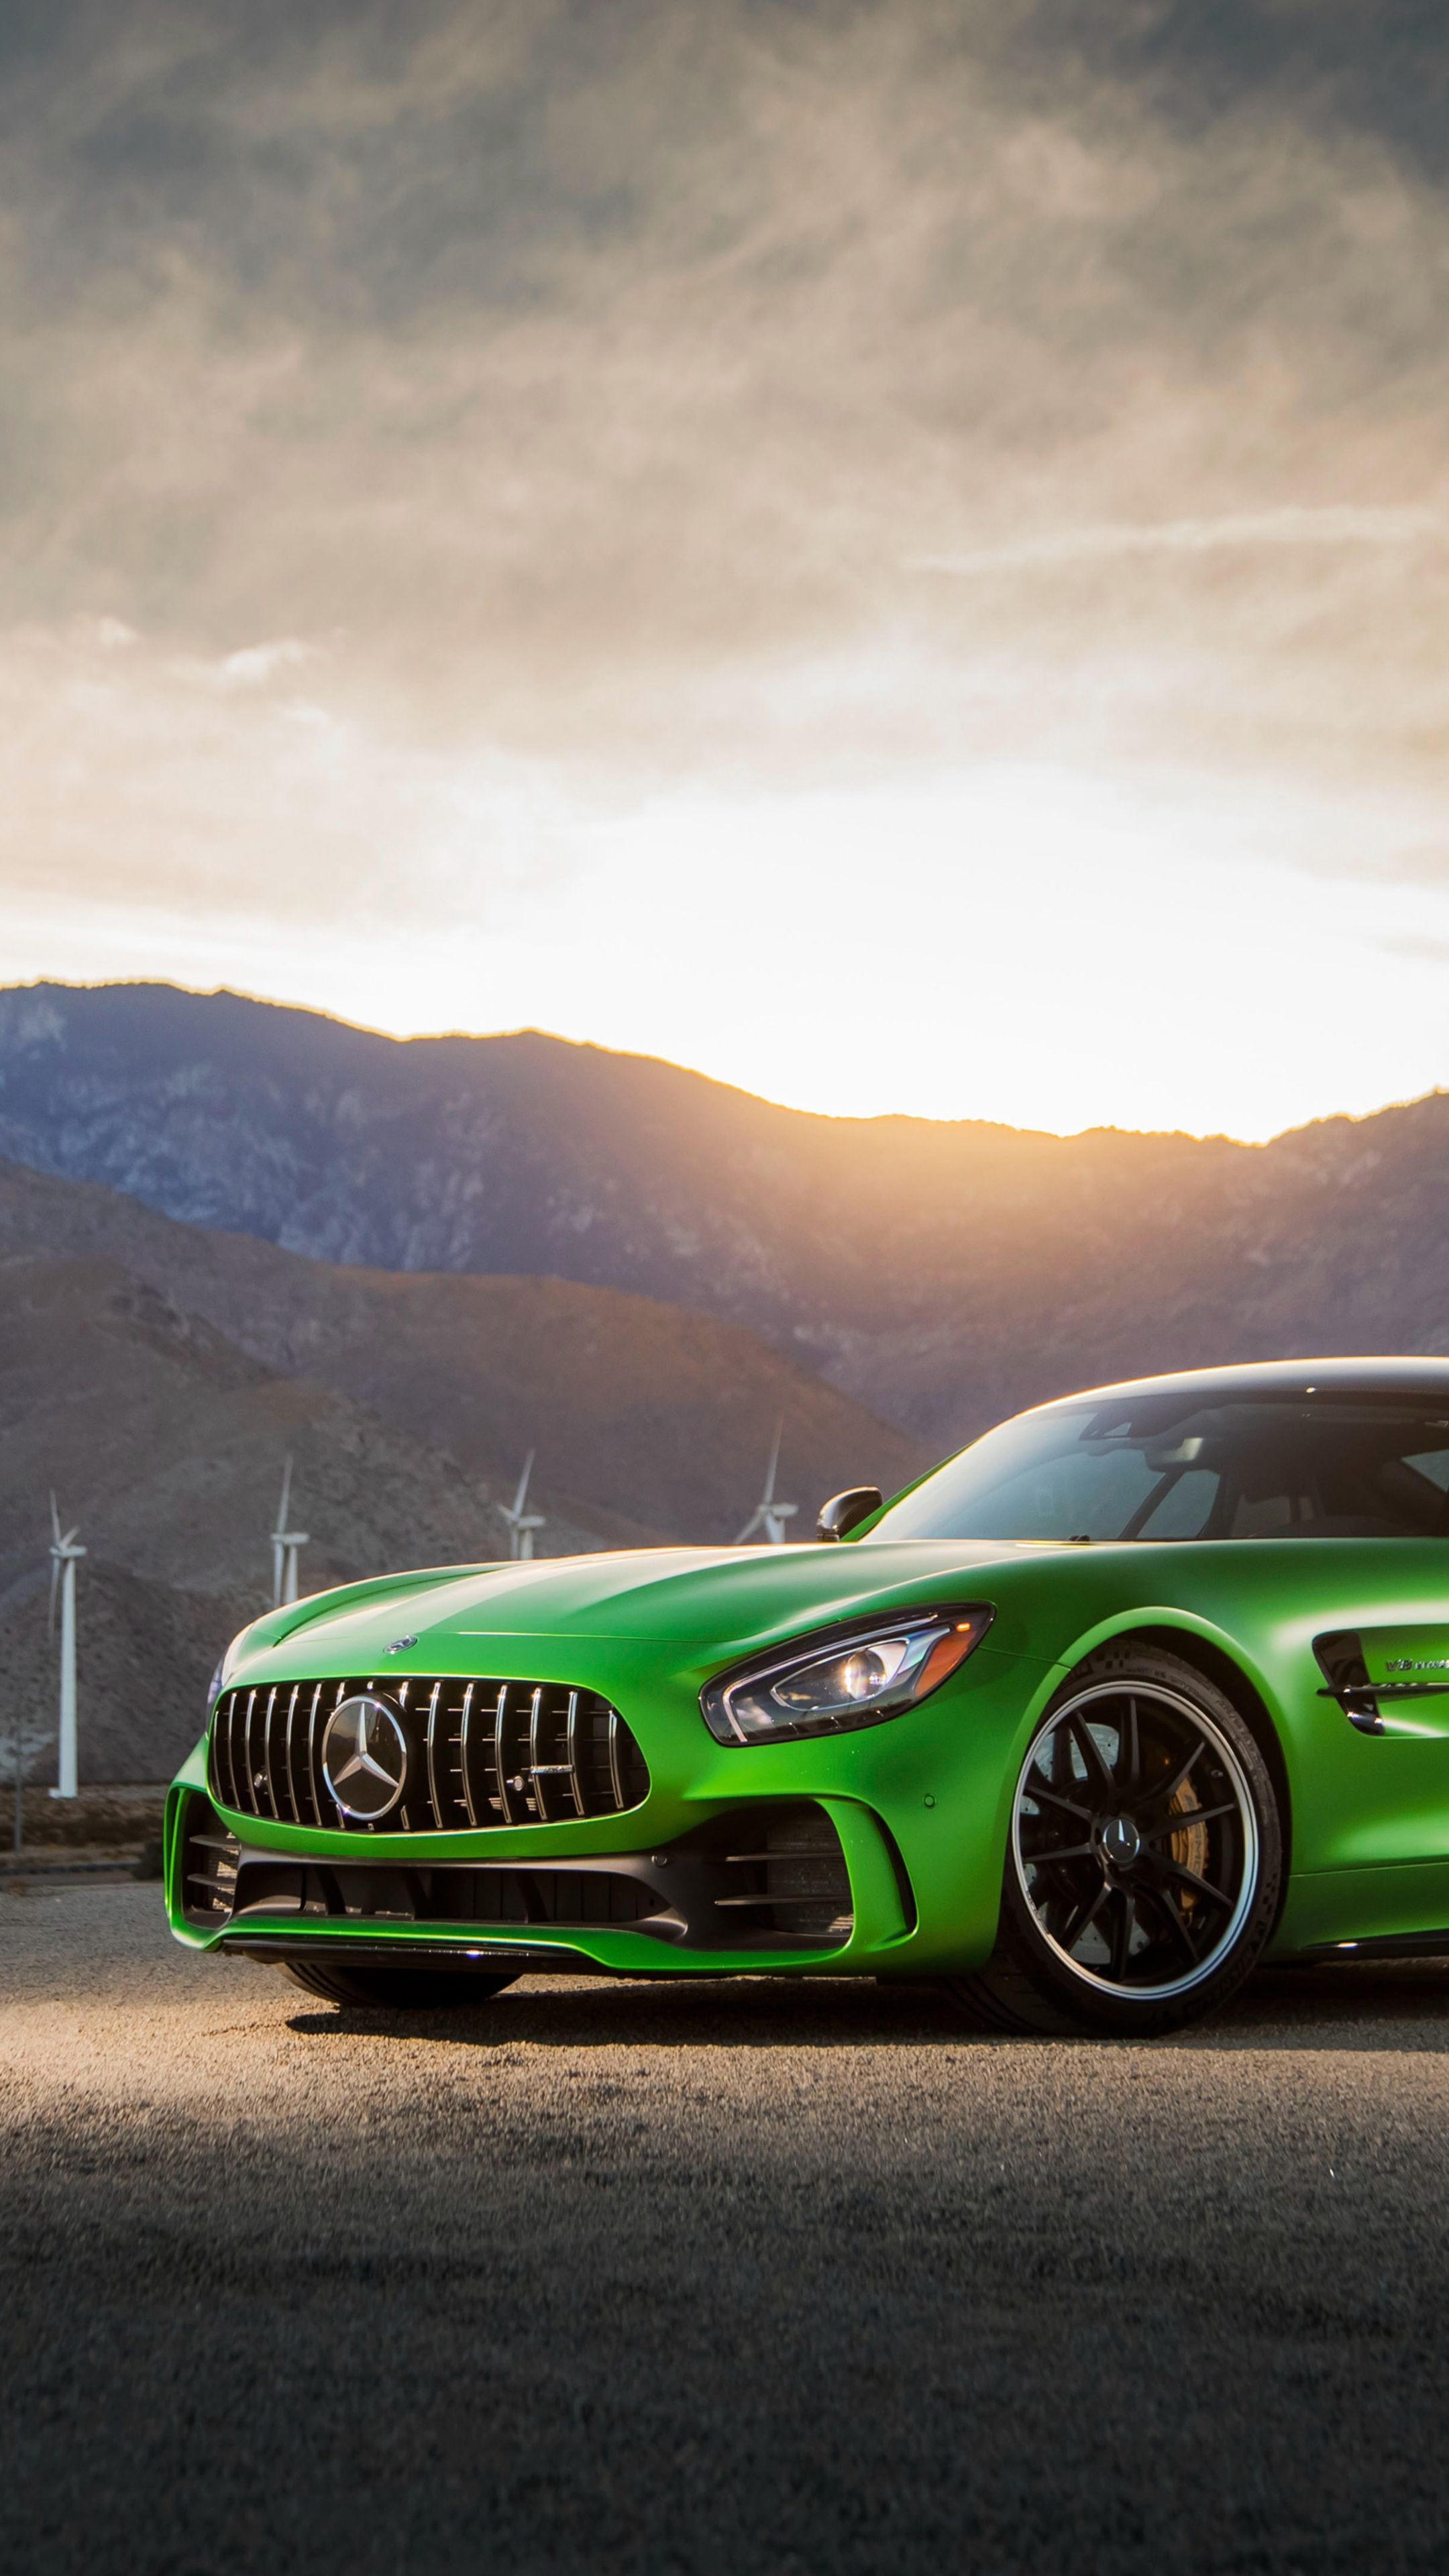 Cars 2018 Mercedes Amg Gtr Wallpapers Coches Deportivos